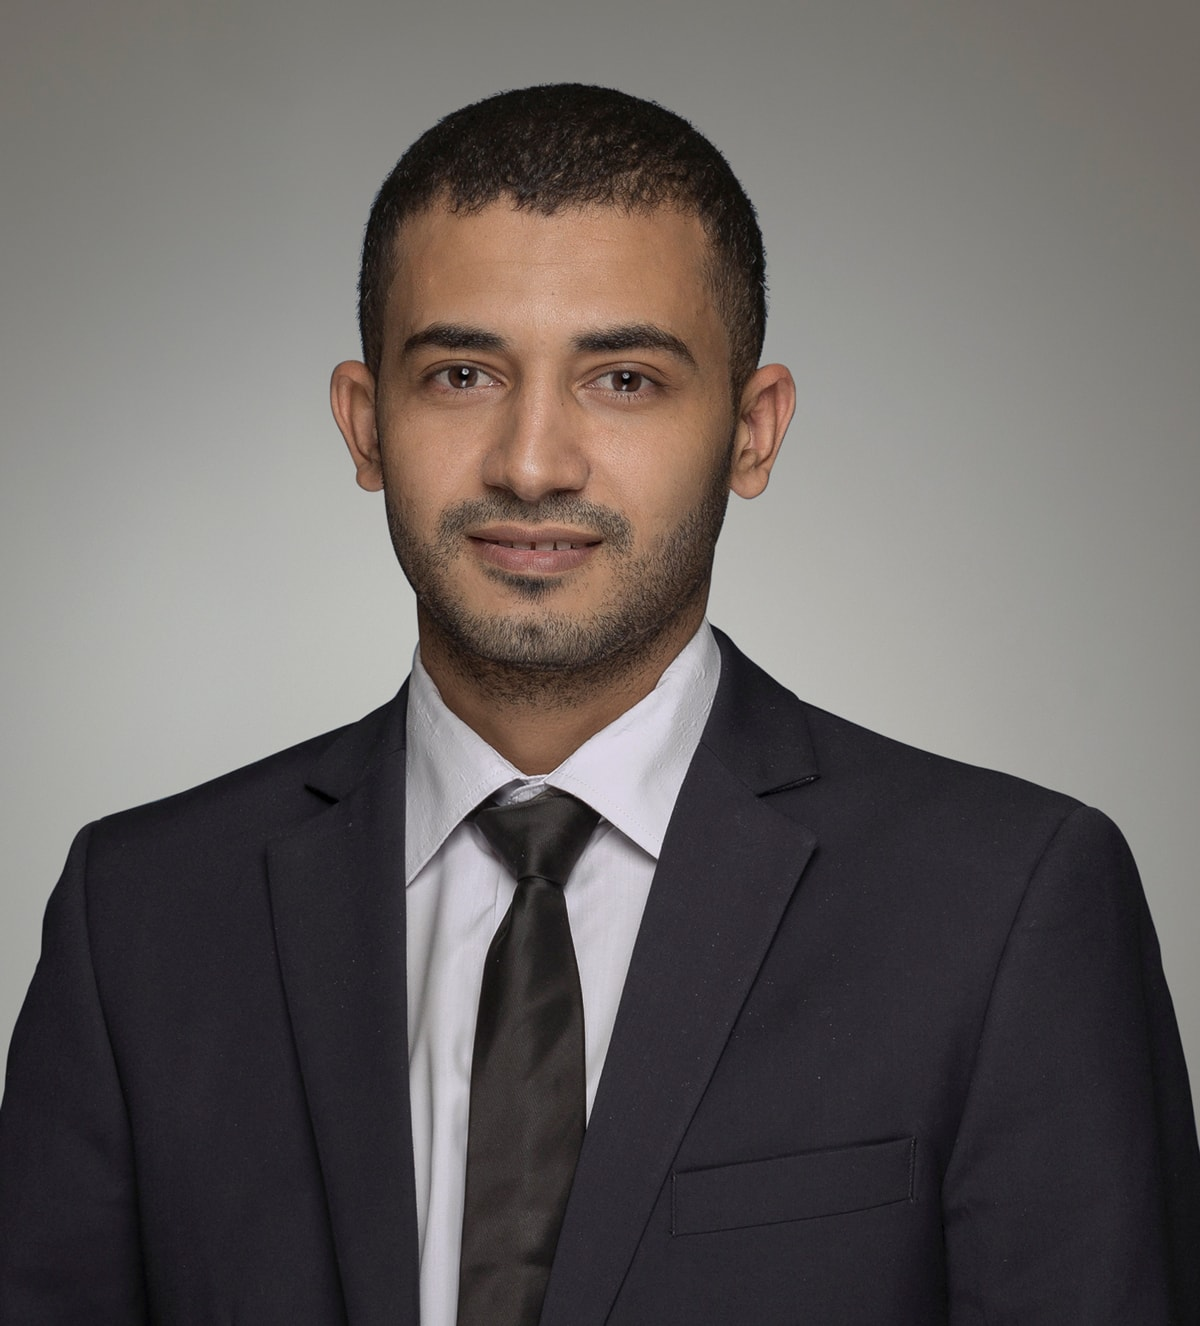 Mohammed Al-Sayed